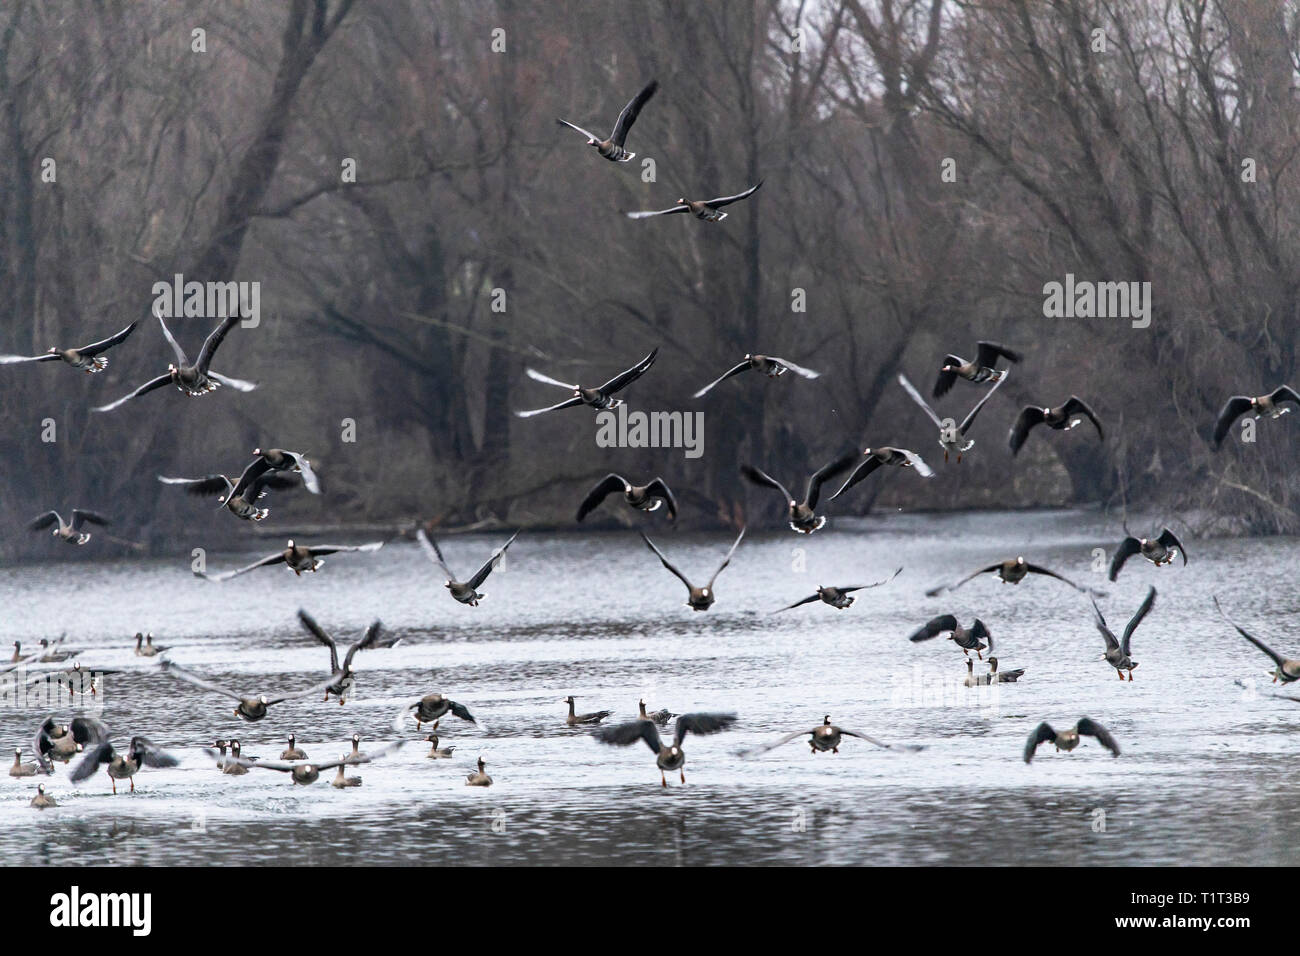 The nature reserve Bislicher Insel, near Xanten on the Lower Rhine, long-tailed geese, Anser albifrons, Germany - Stock Image